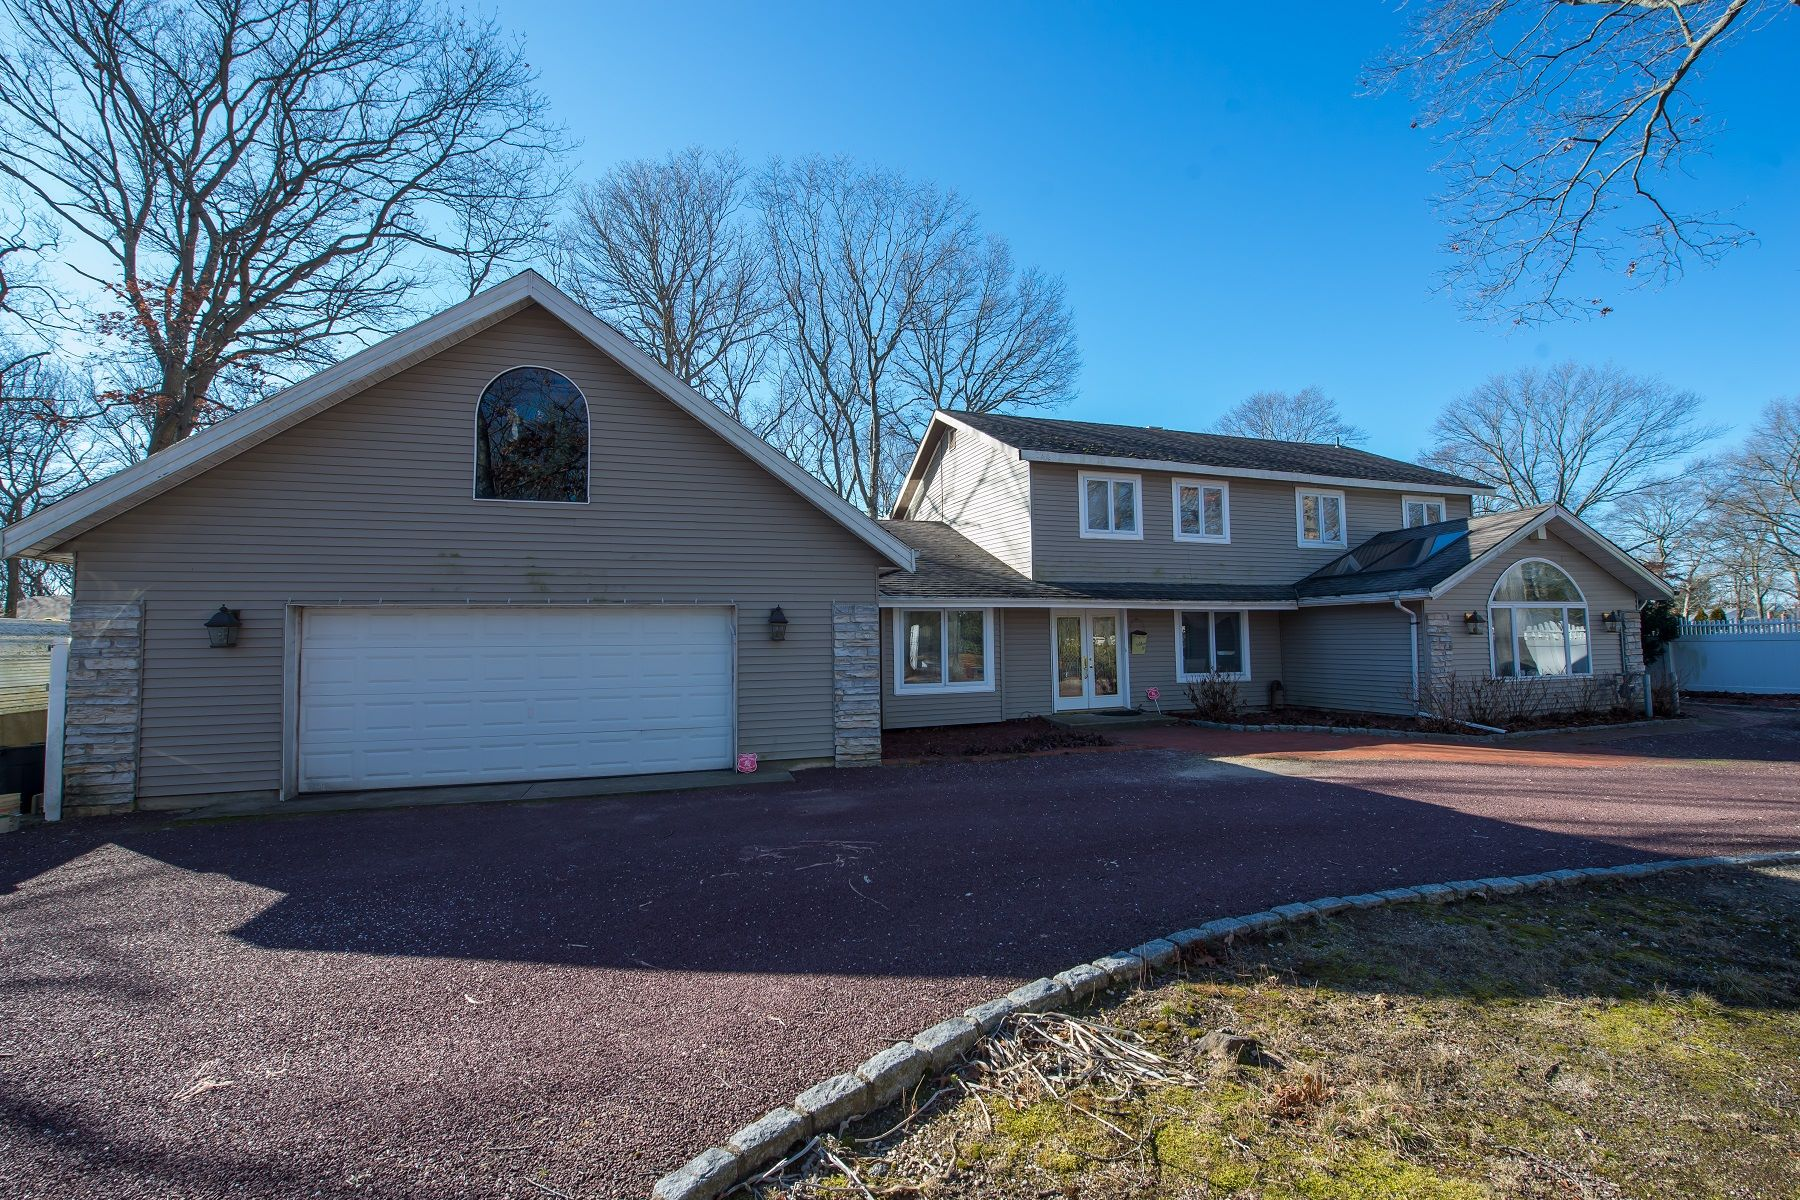 Single Family Homes for Active at Lake Grove 10 Russet Ln Lake Grove, New York 11755 United States